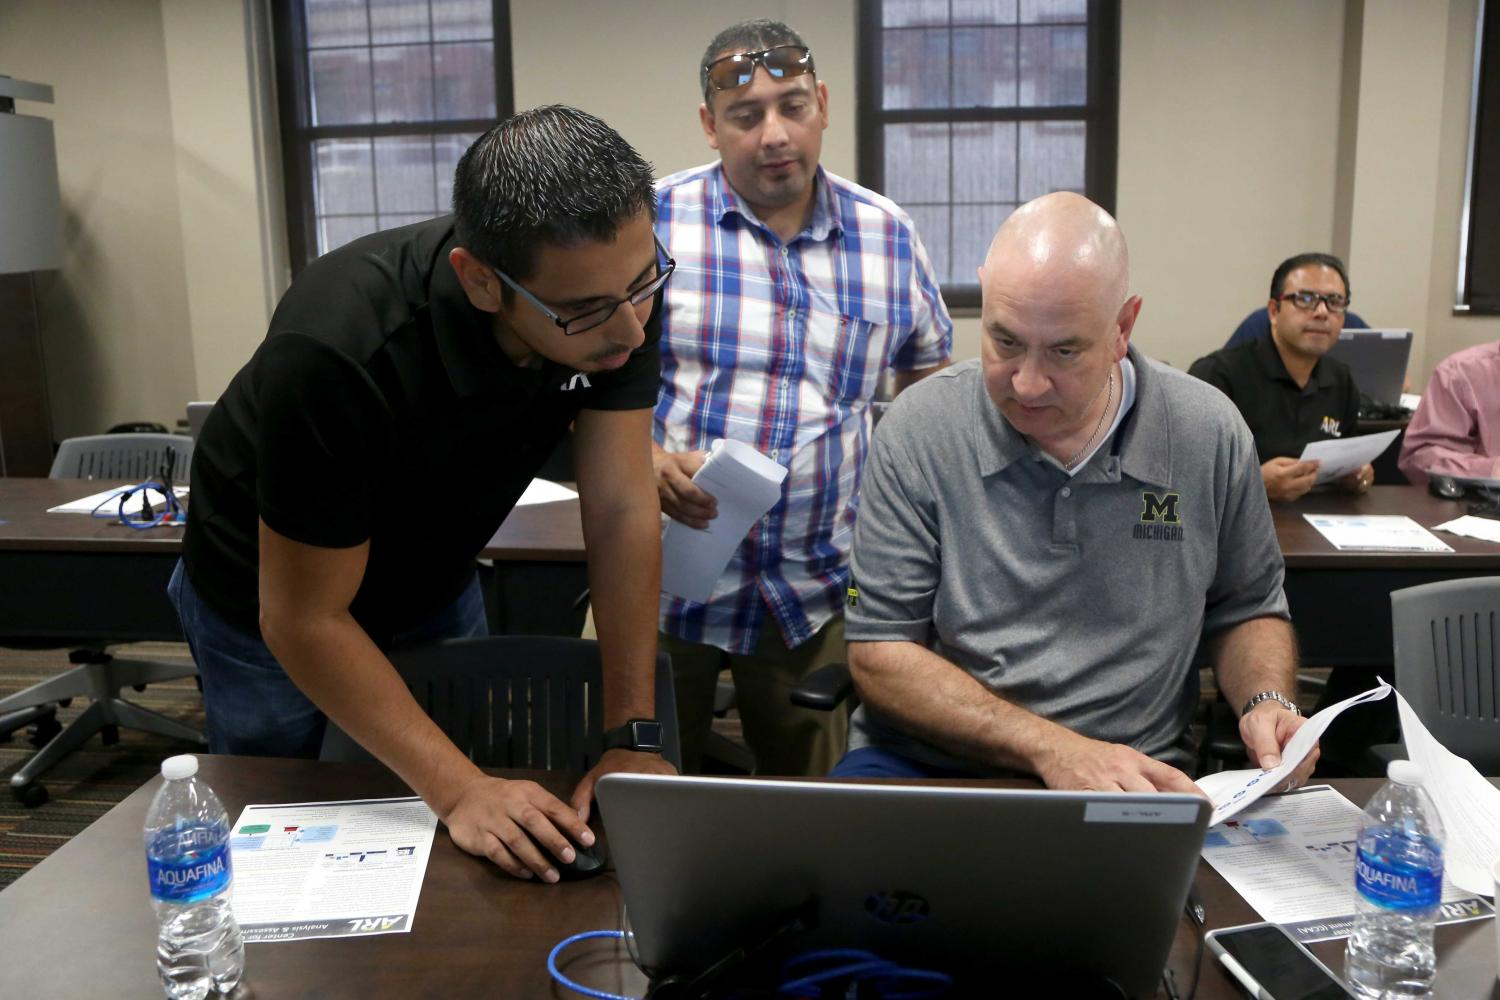 New+cybersecurity+center+at+UTEP+hosts+first+community+workshop